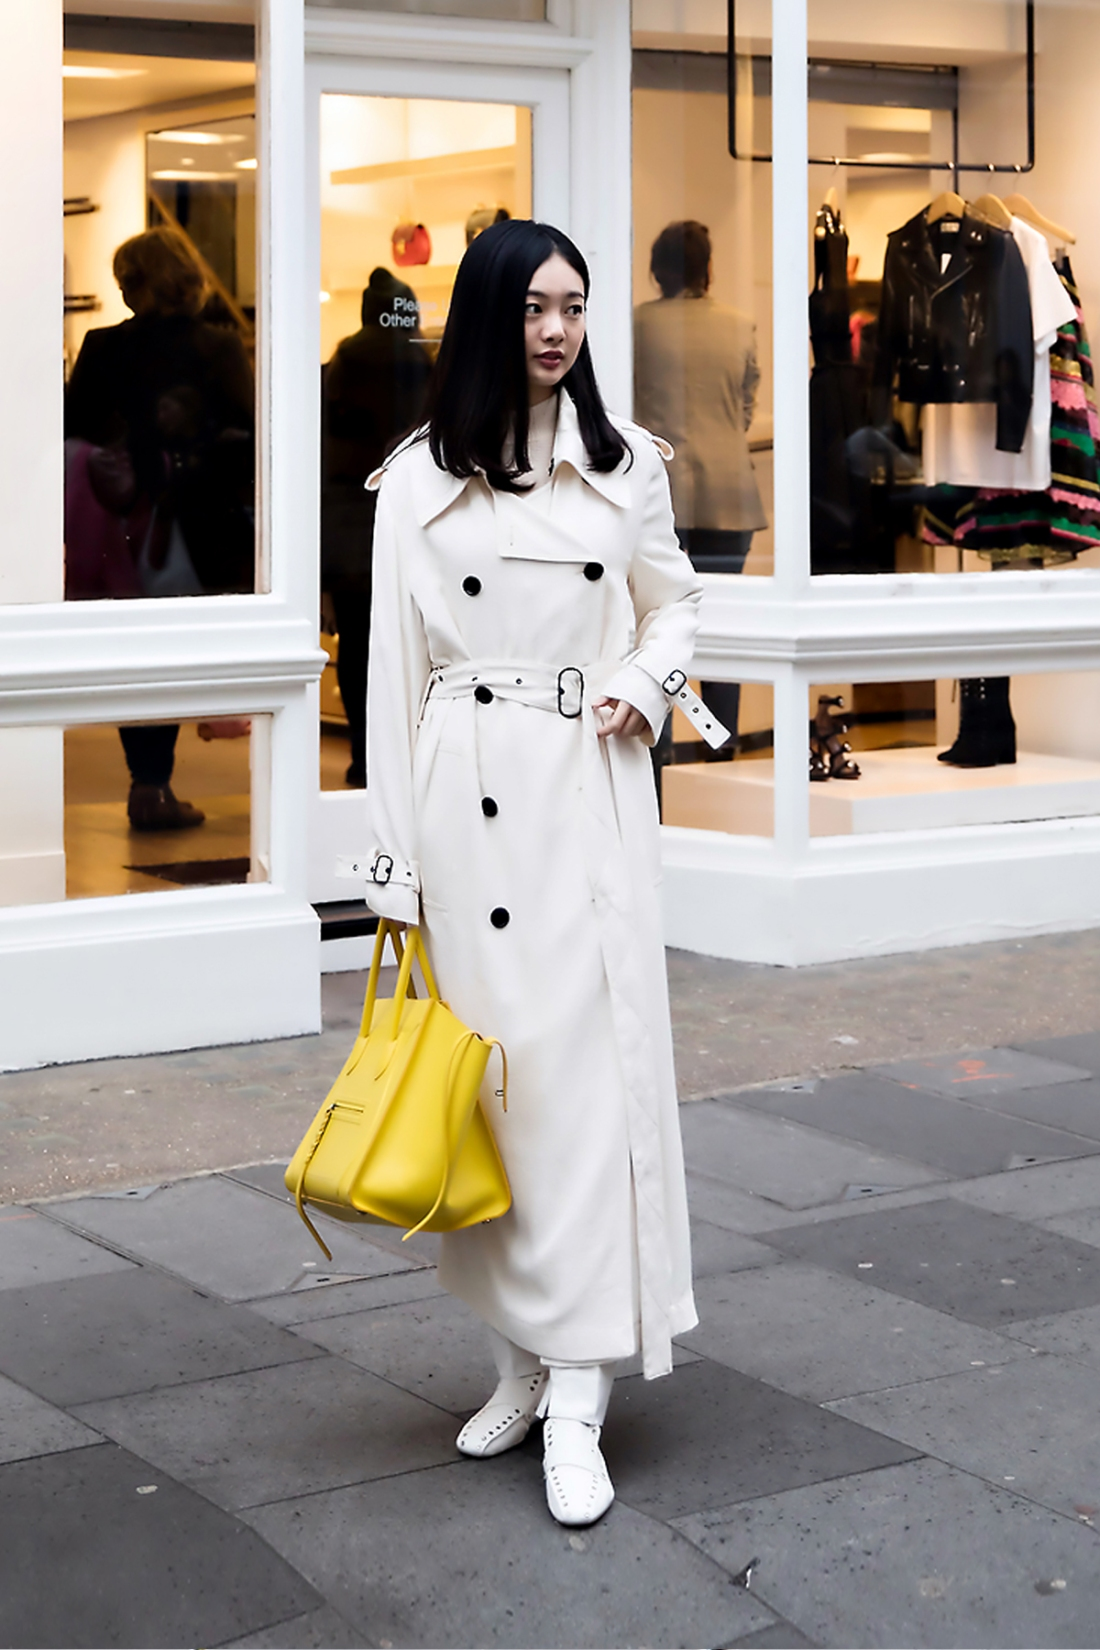 Xinyi, Street Fashion 2017 in London.jpg